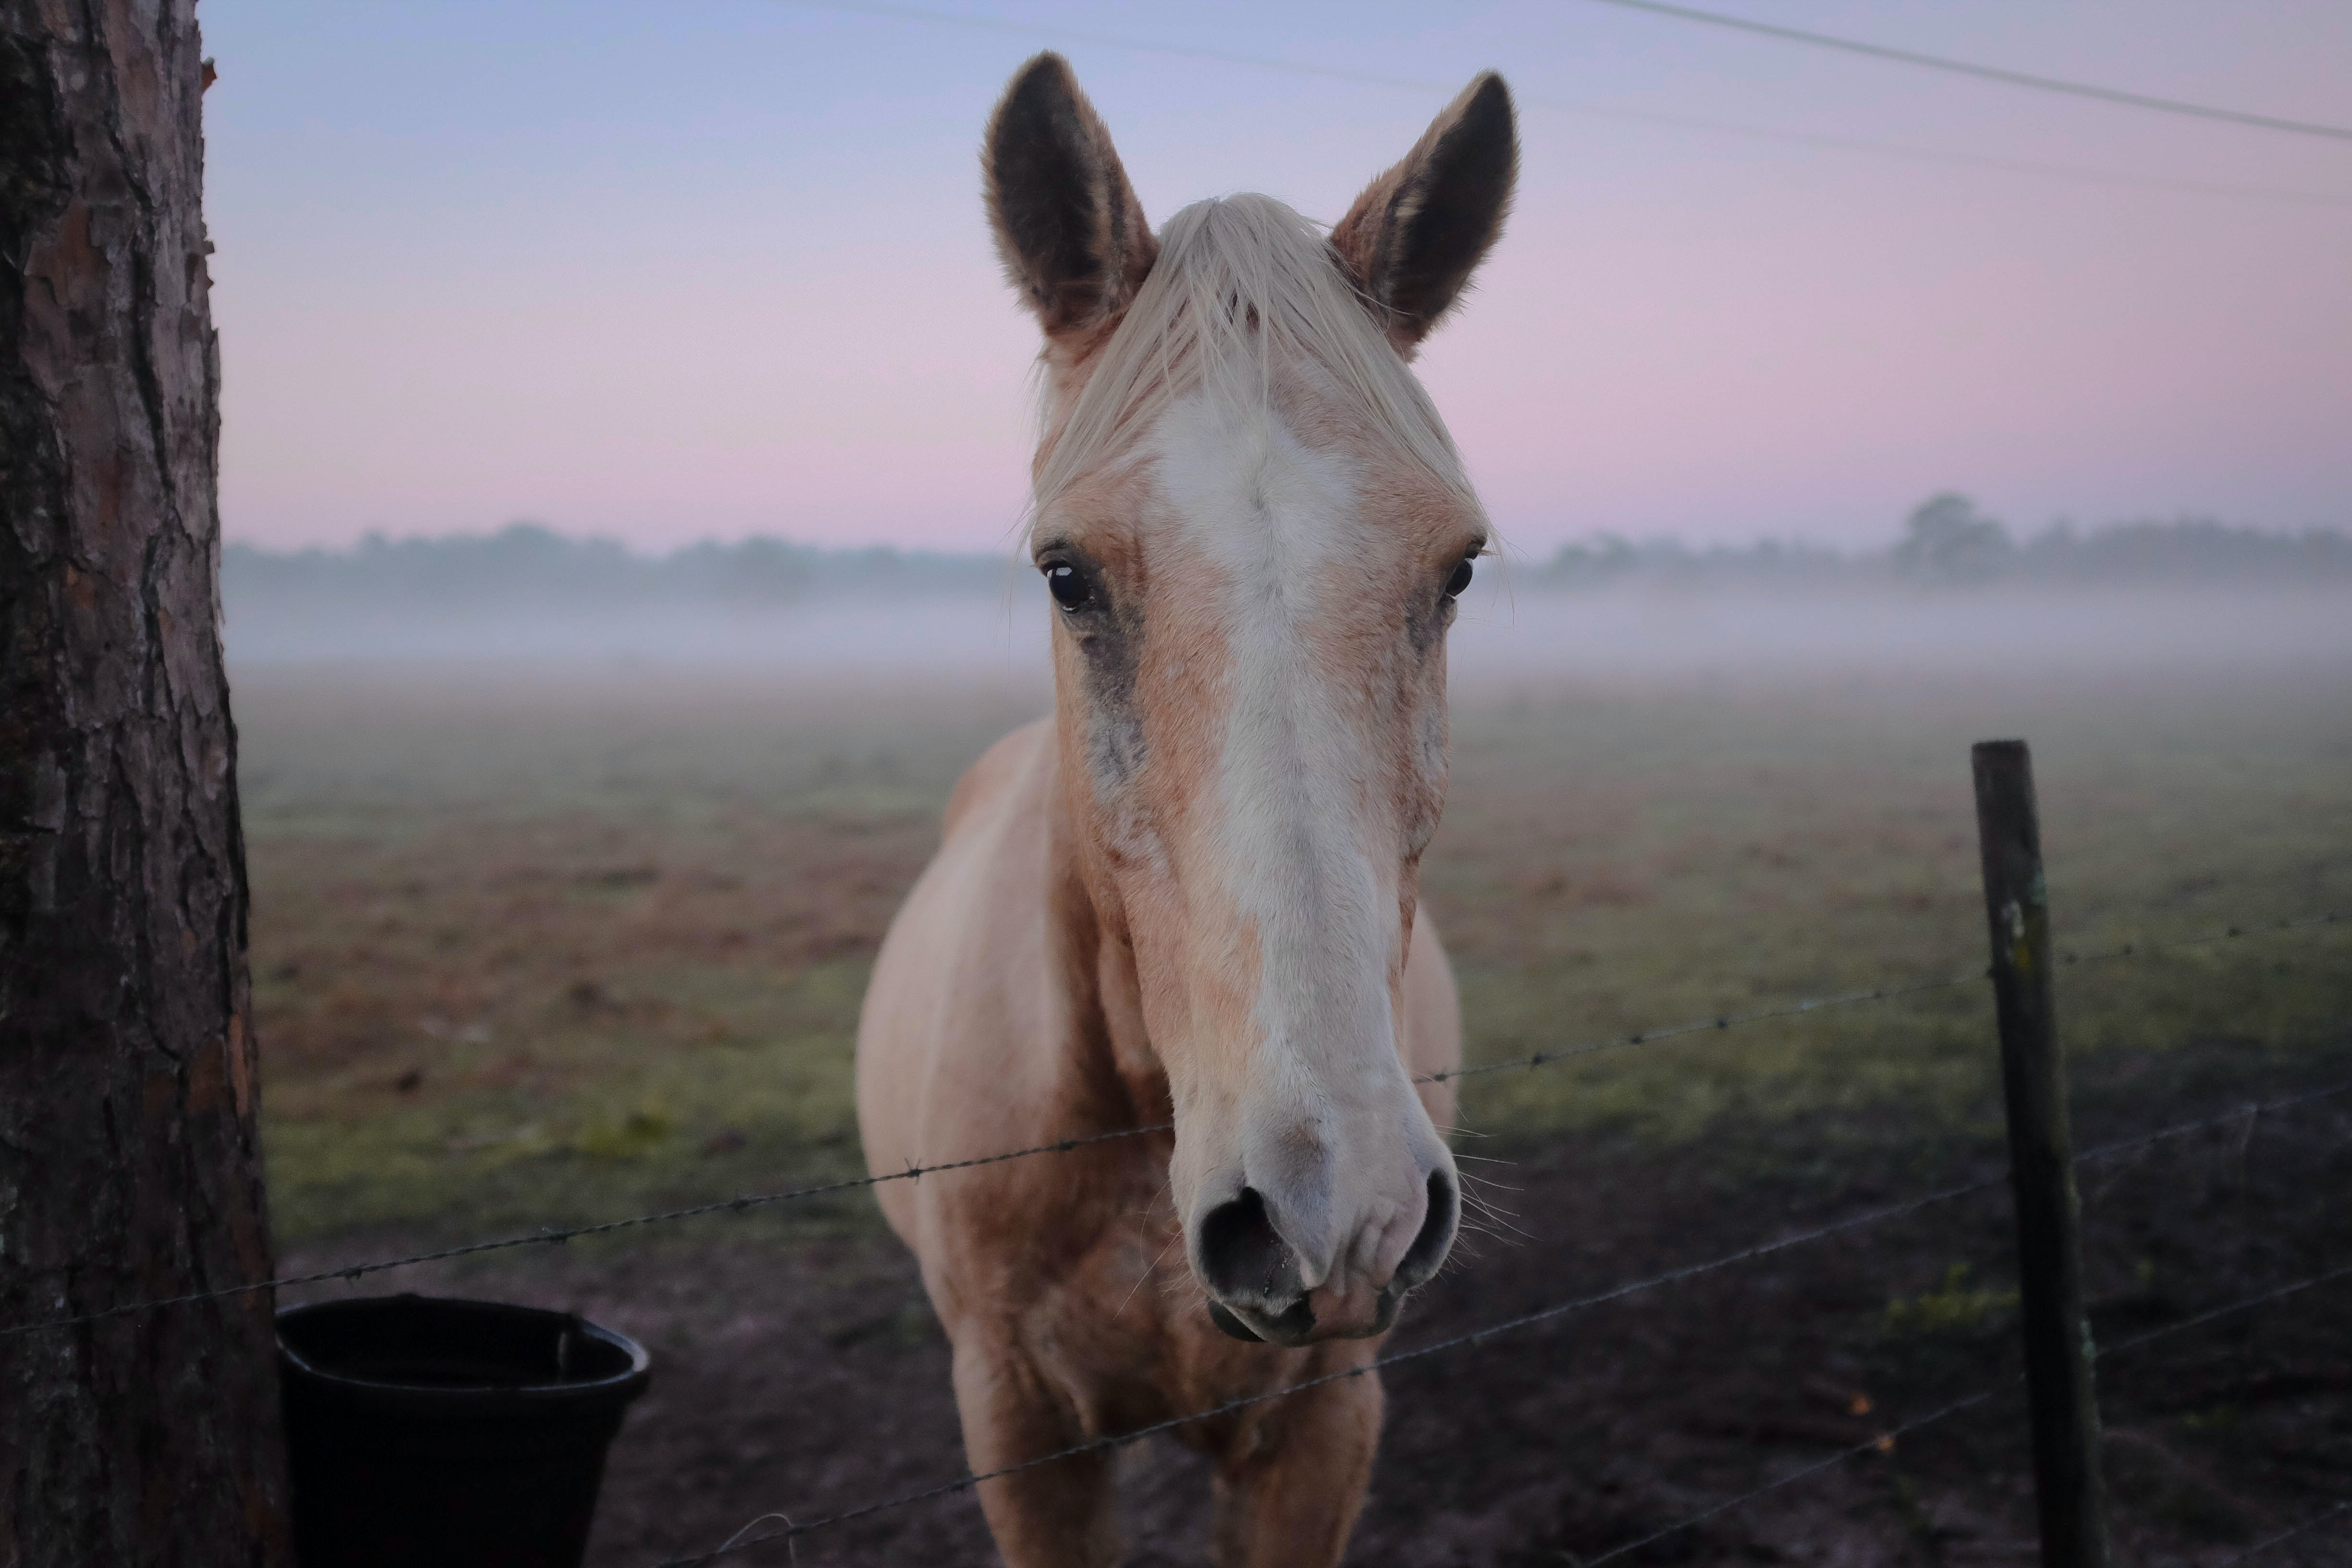 A close-up of a palomino horse's head over a barbed fence with fog enveloping the pasture